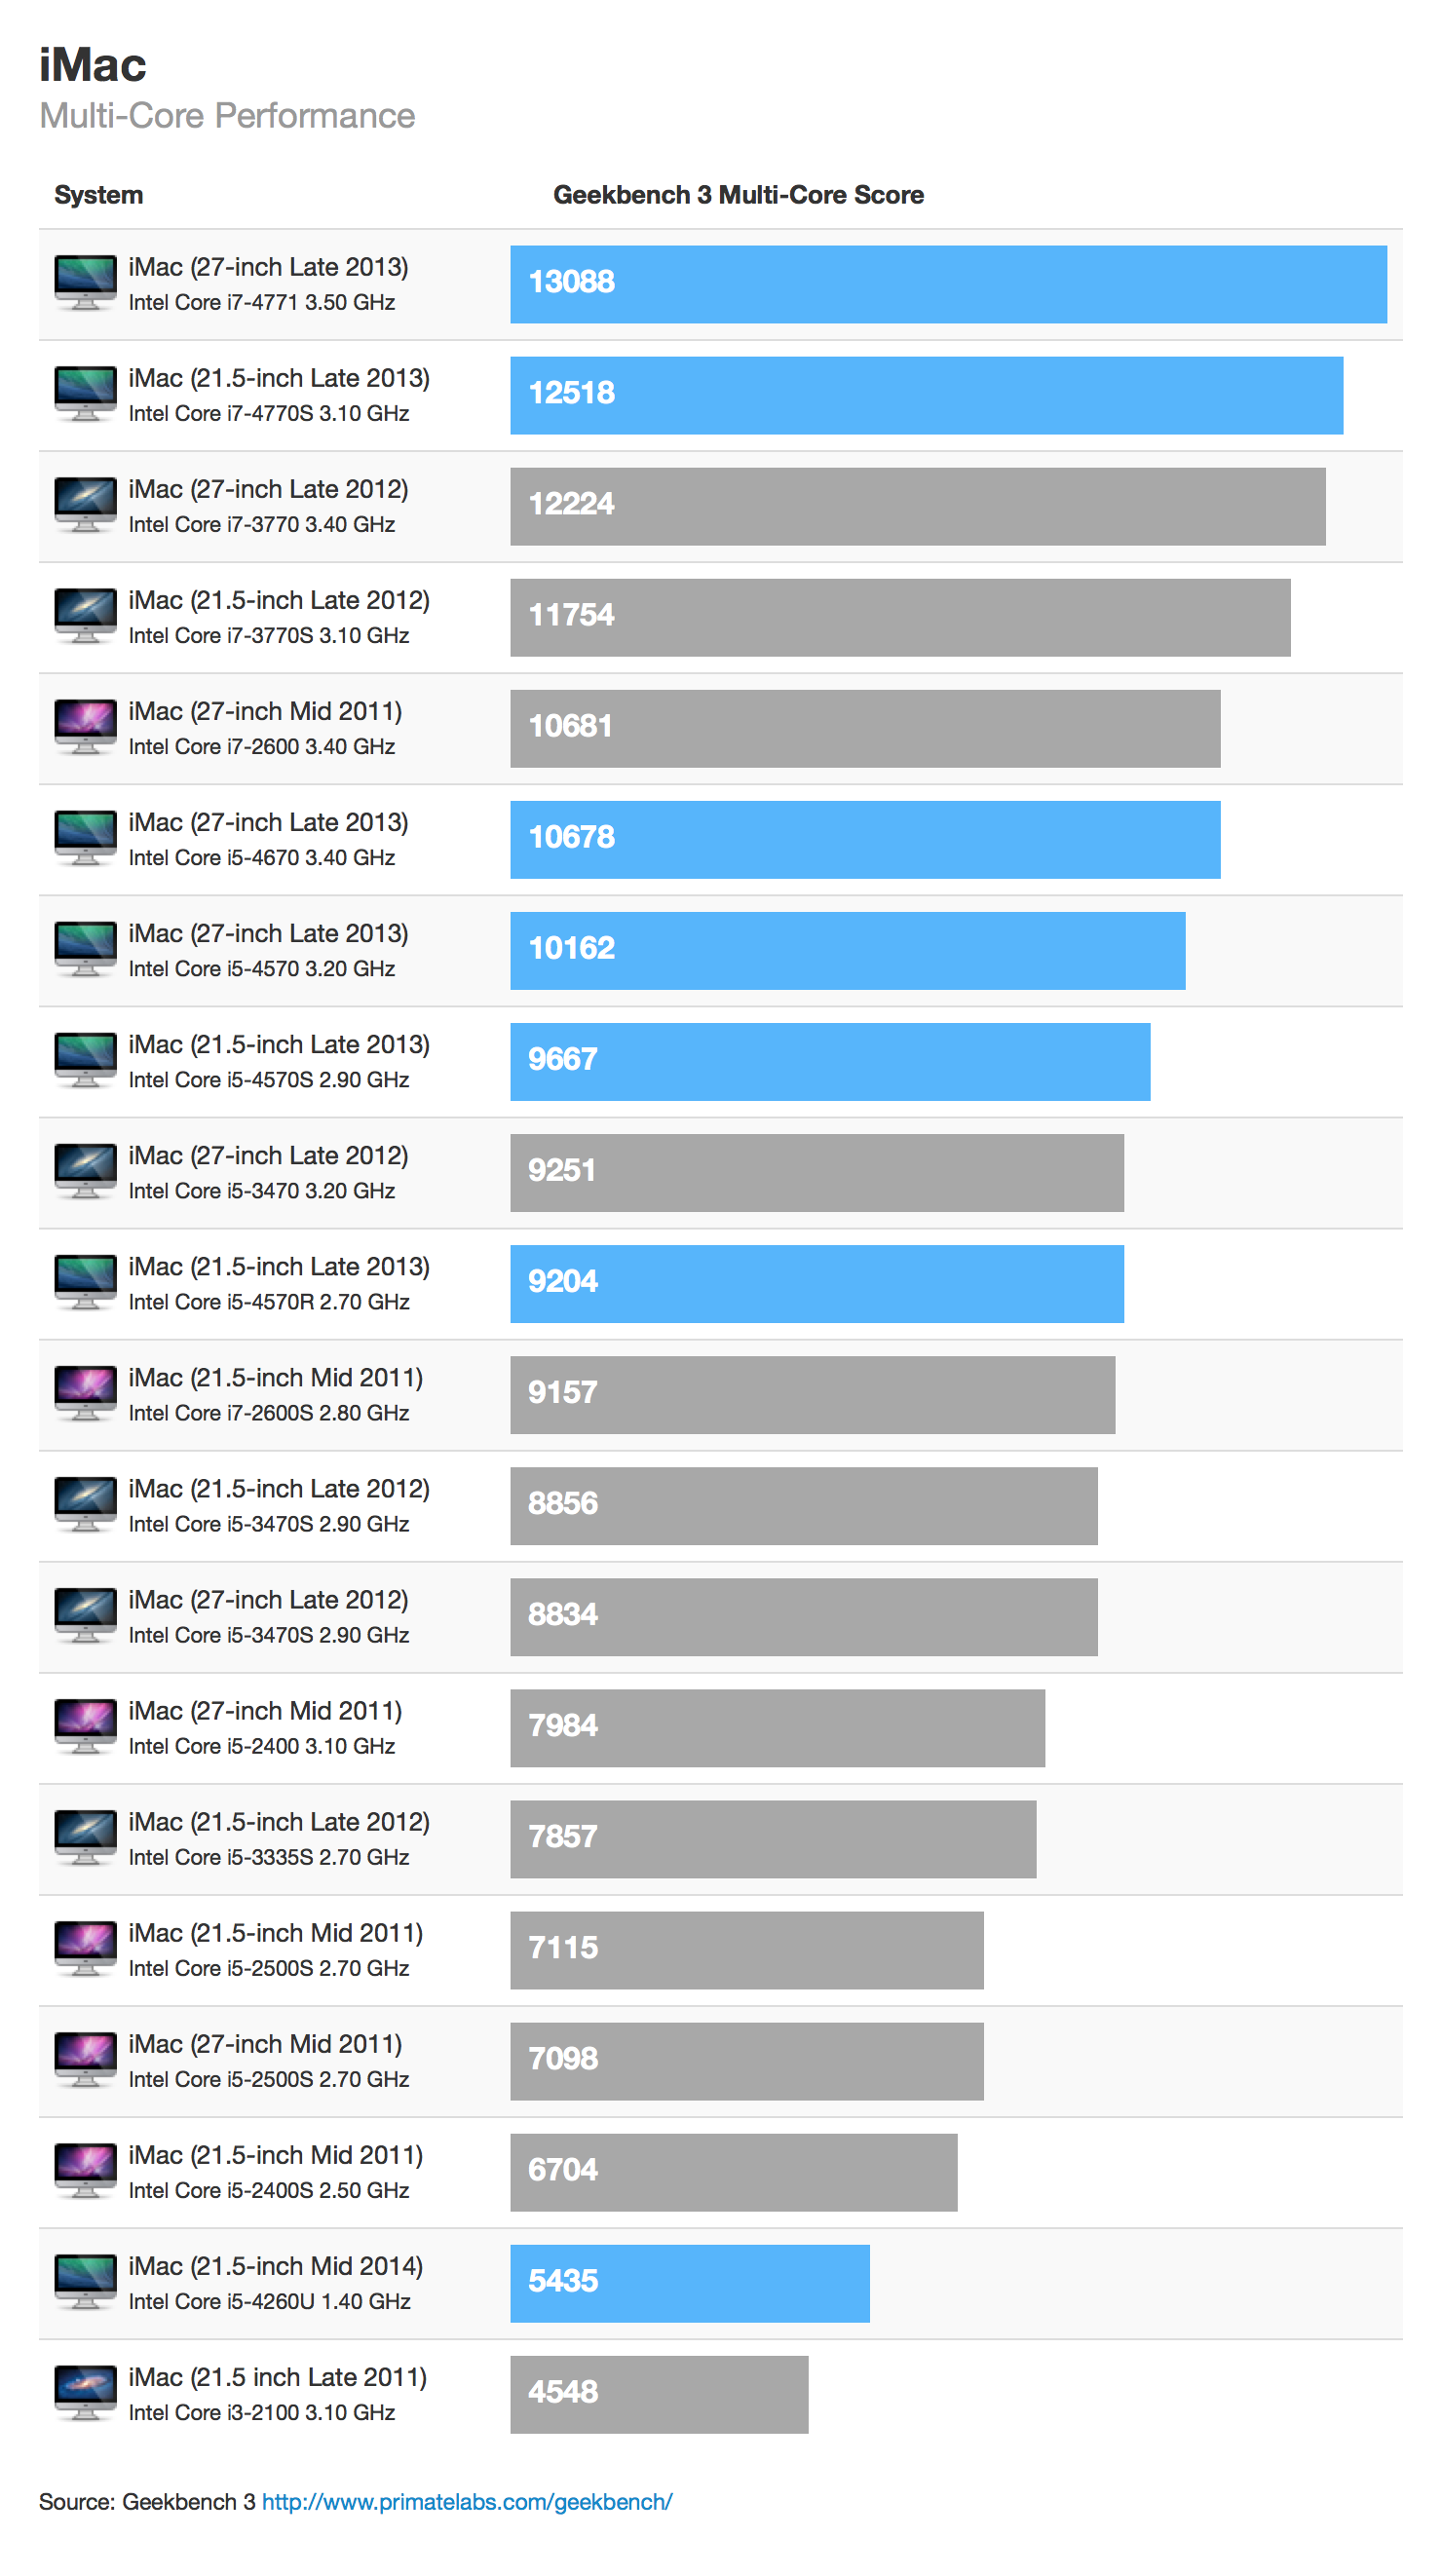 iMac Performance (new low cost iMac released in June 2014)